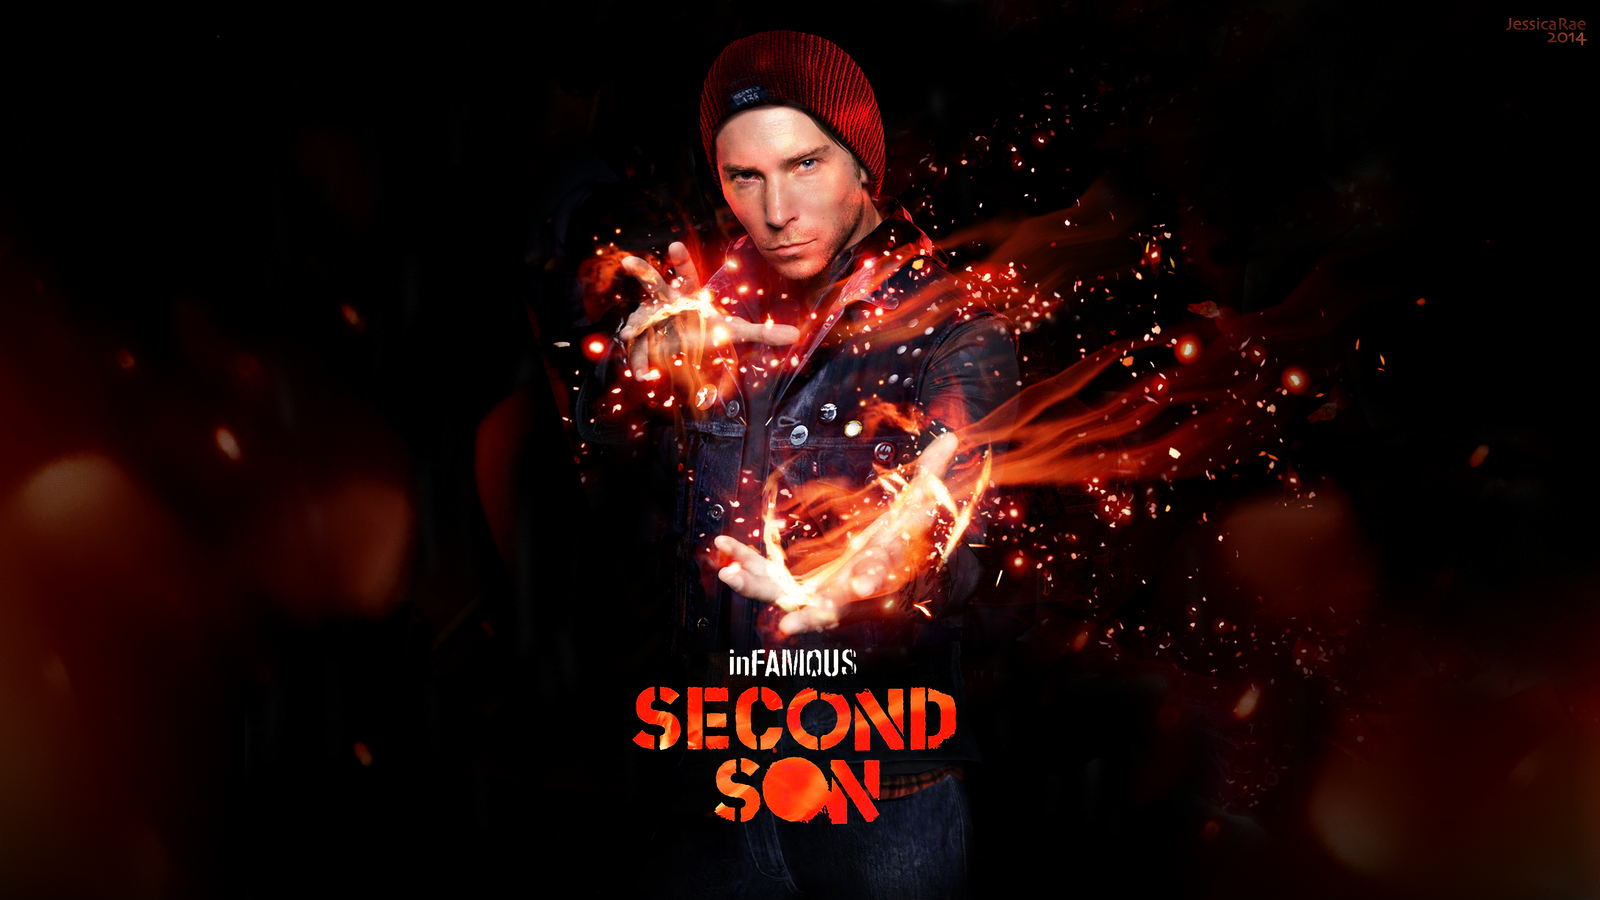 The Real Second Son By Jessicarae24 On DeviantArt